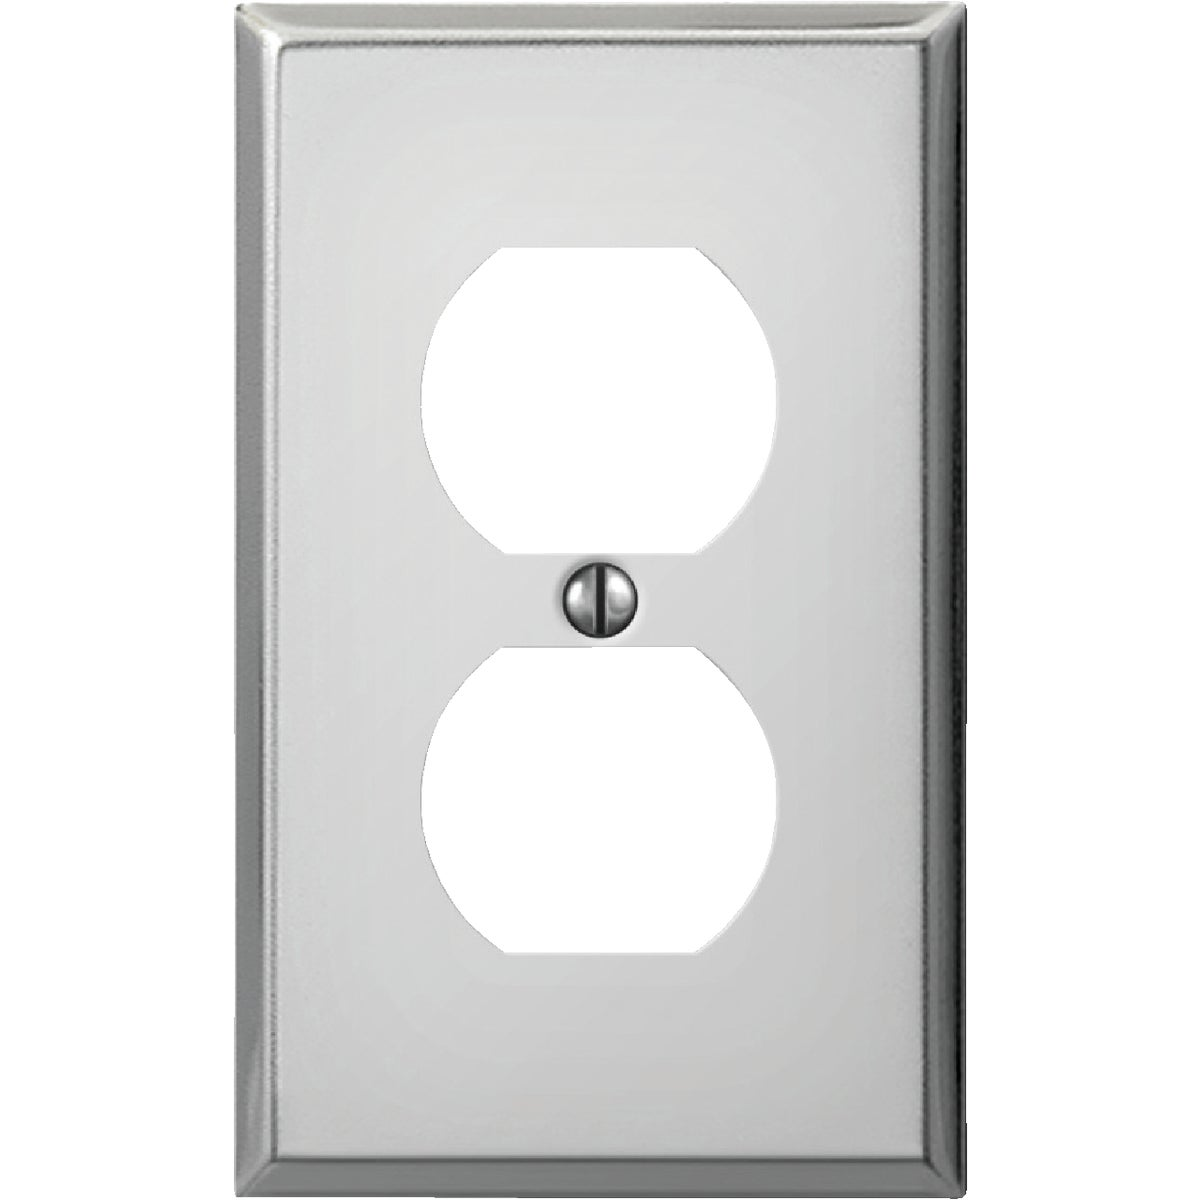 CHR OUTLET WALL PLATE